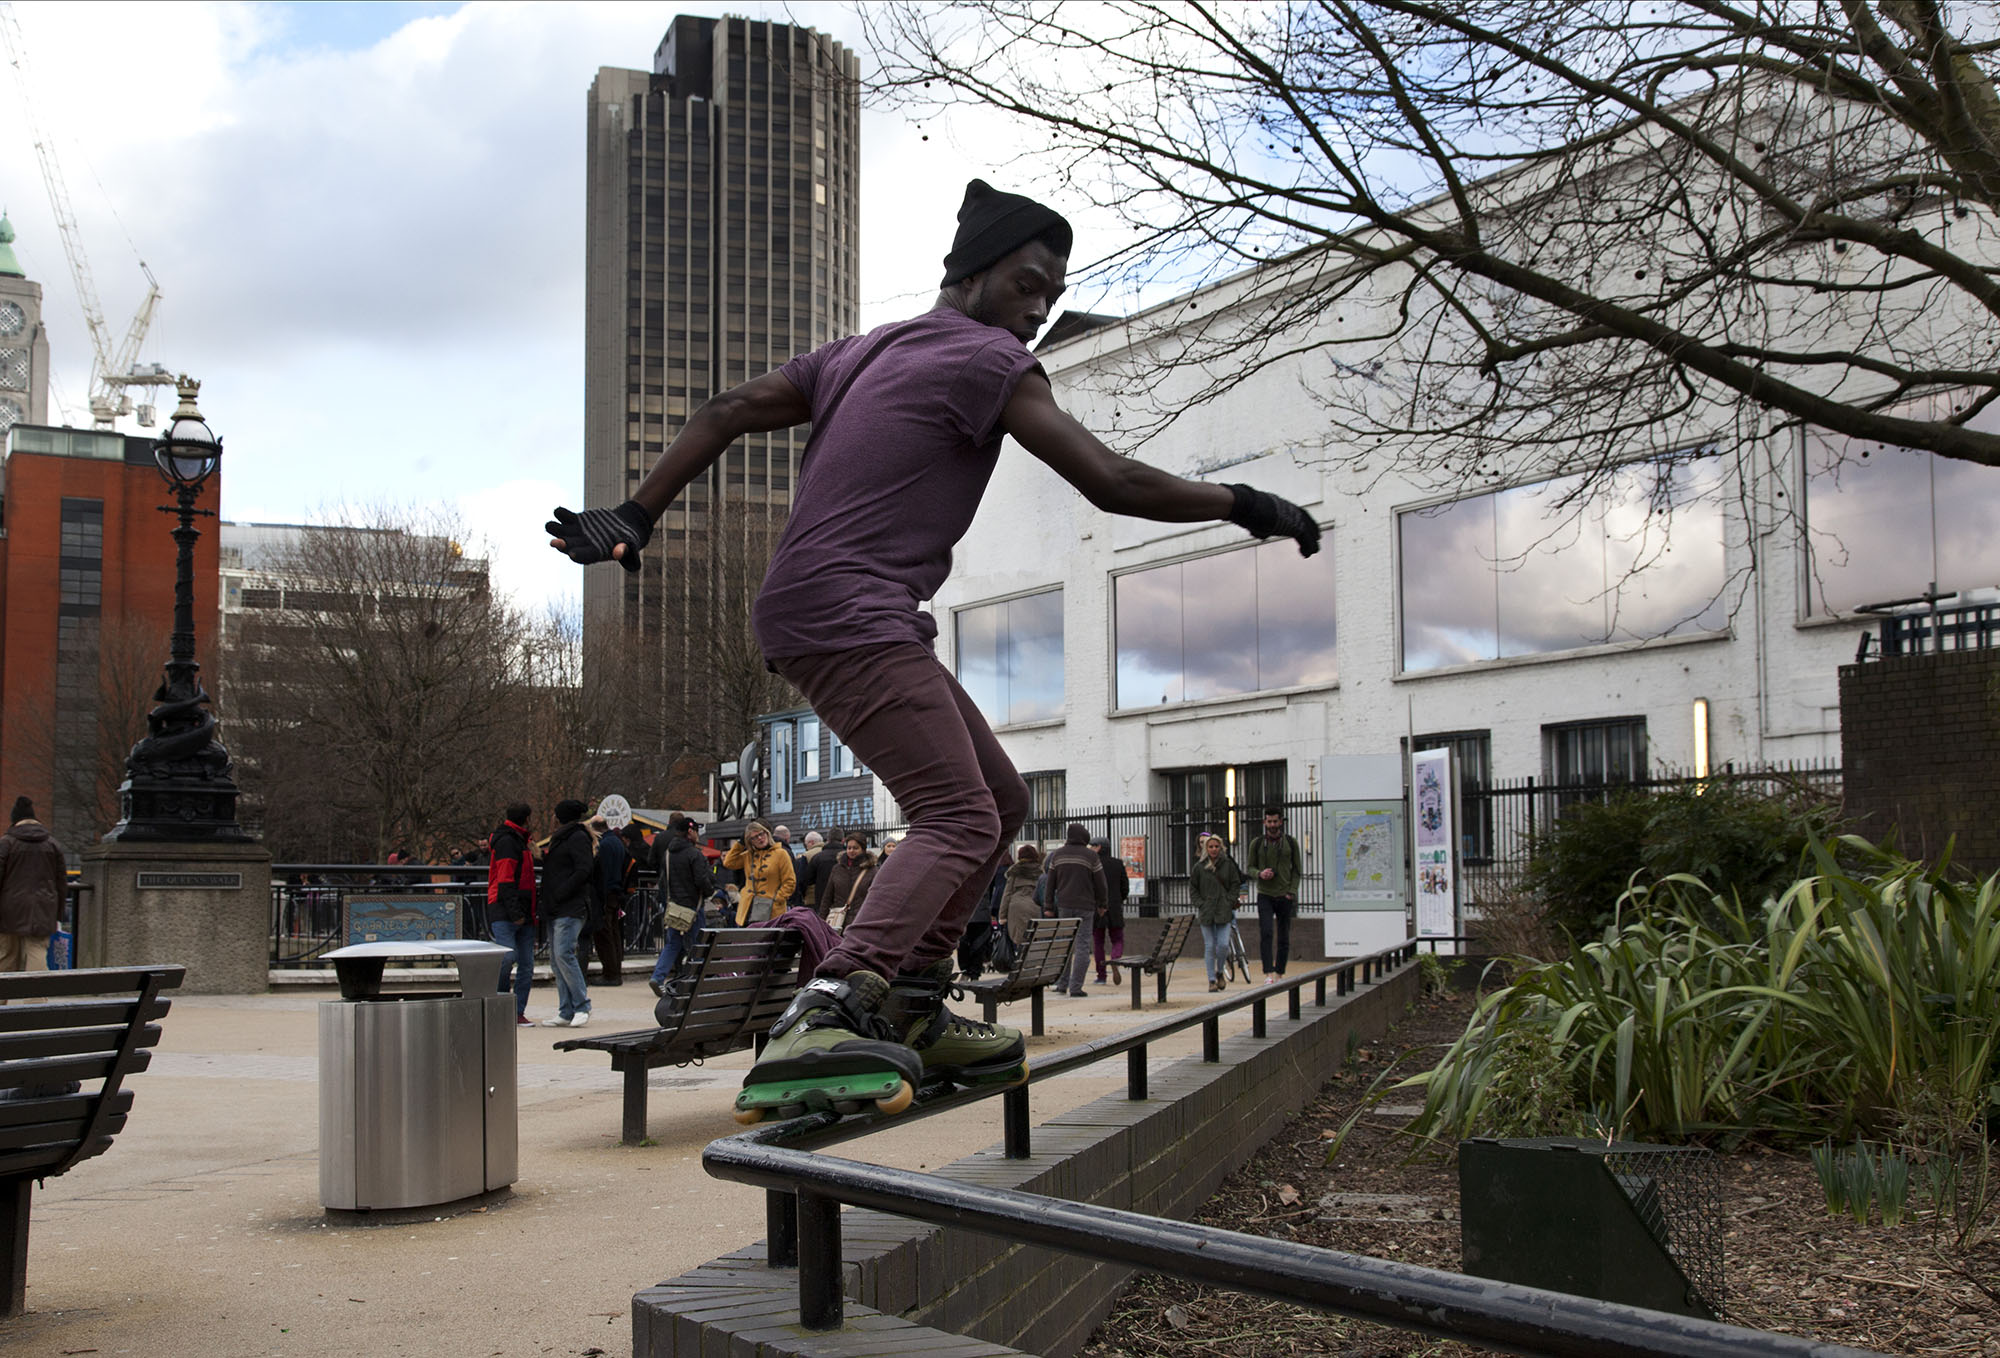 'Aggressive' inline skater performs a glide trick along a rail on the South Bank walkway.